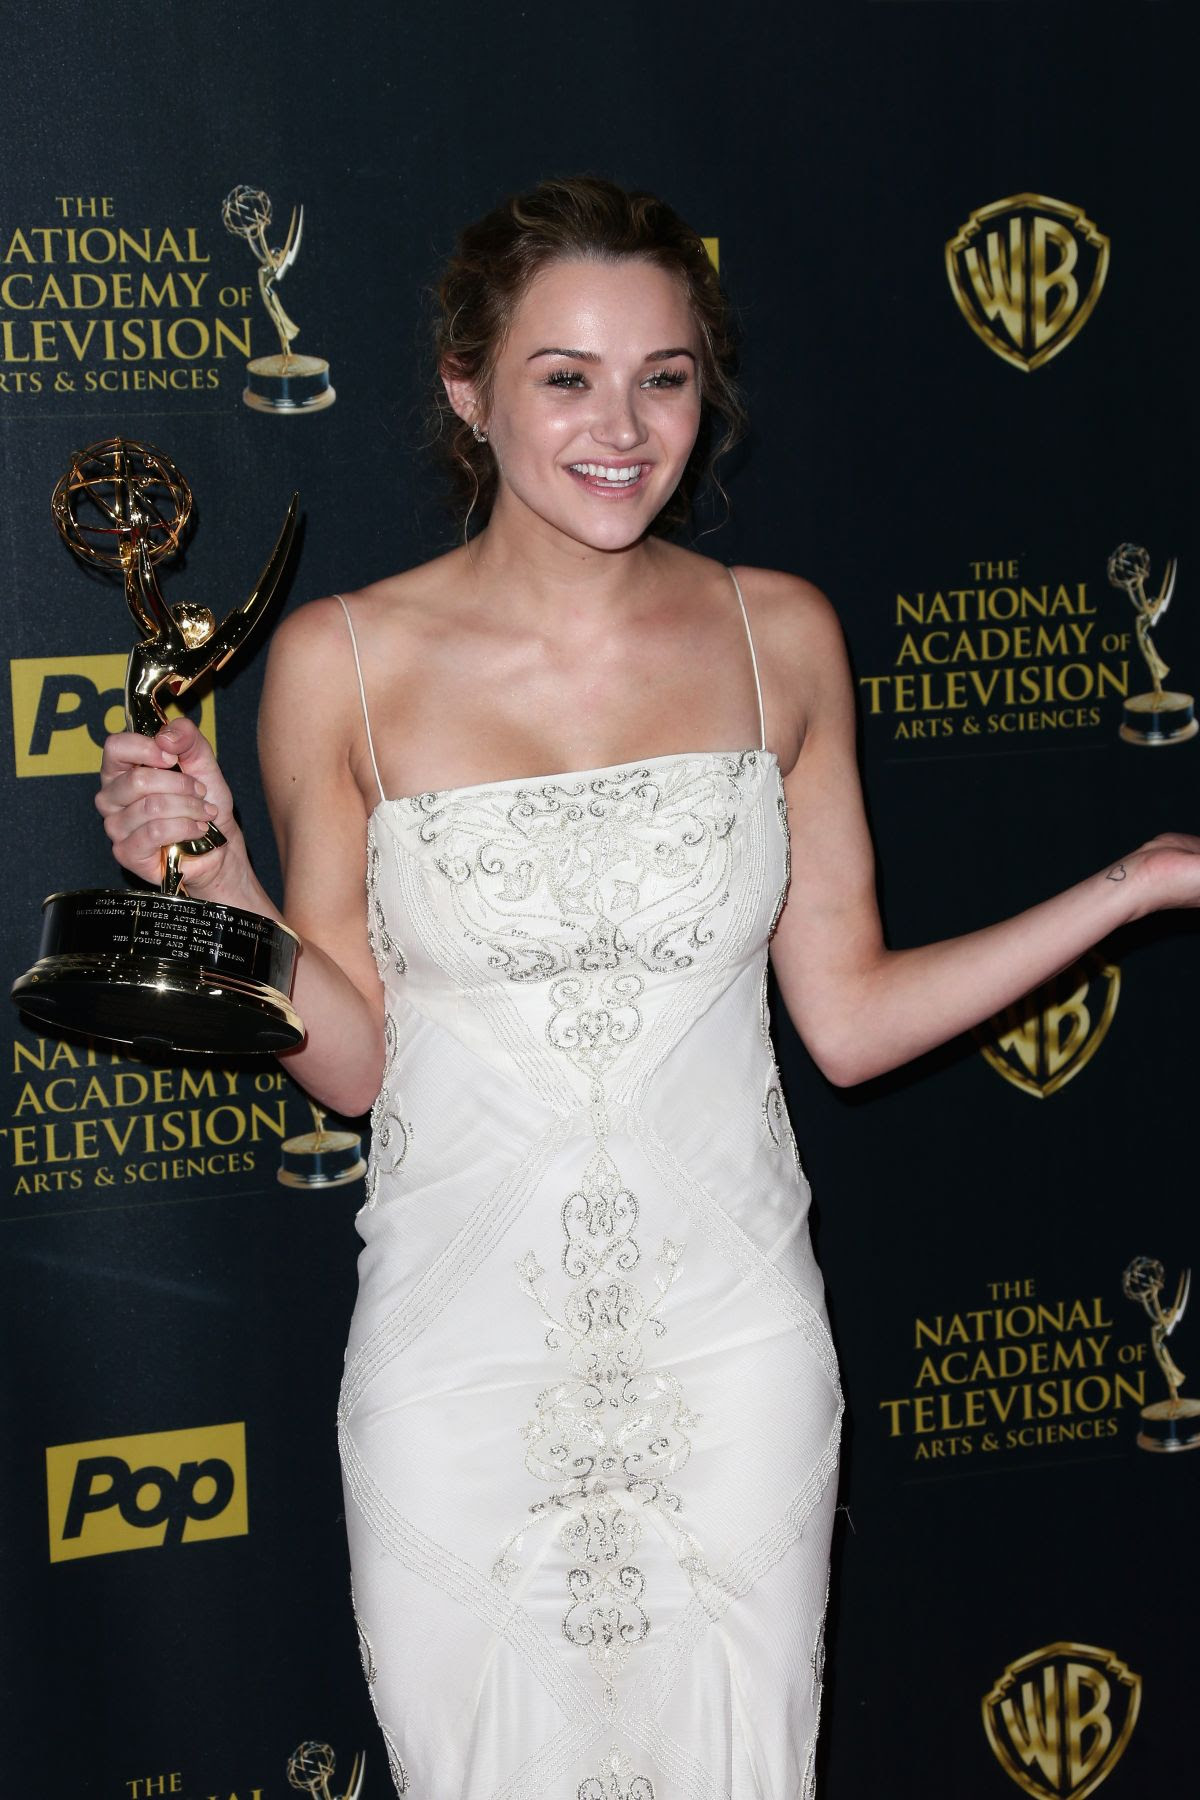 HUNTER HALEY KING at 2015 Daytime Emmy Awards in Burbank